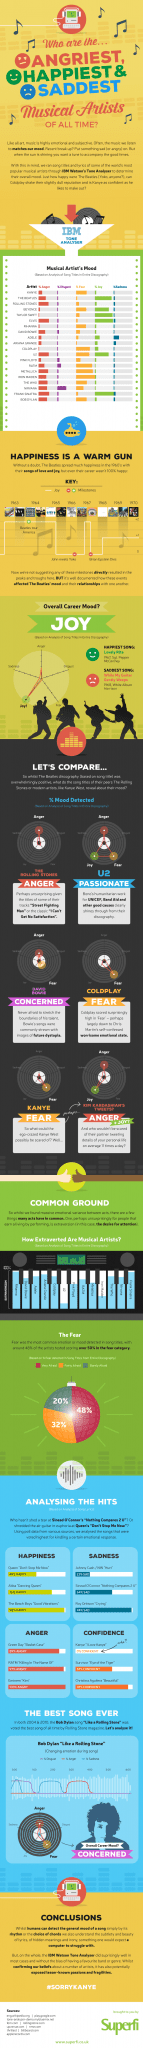 Infographic: Emotions expressed in a song